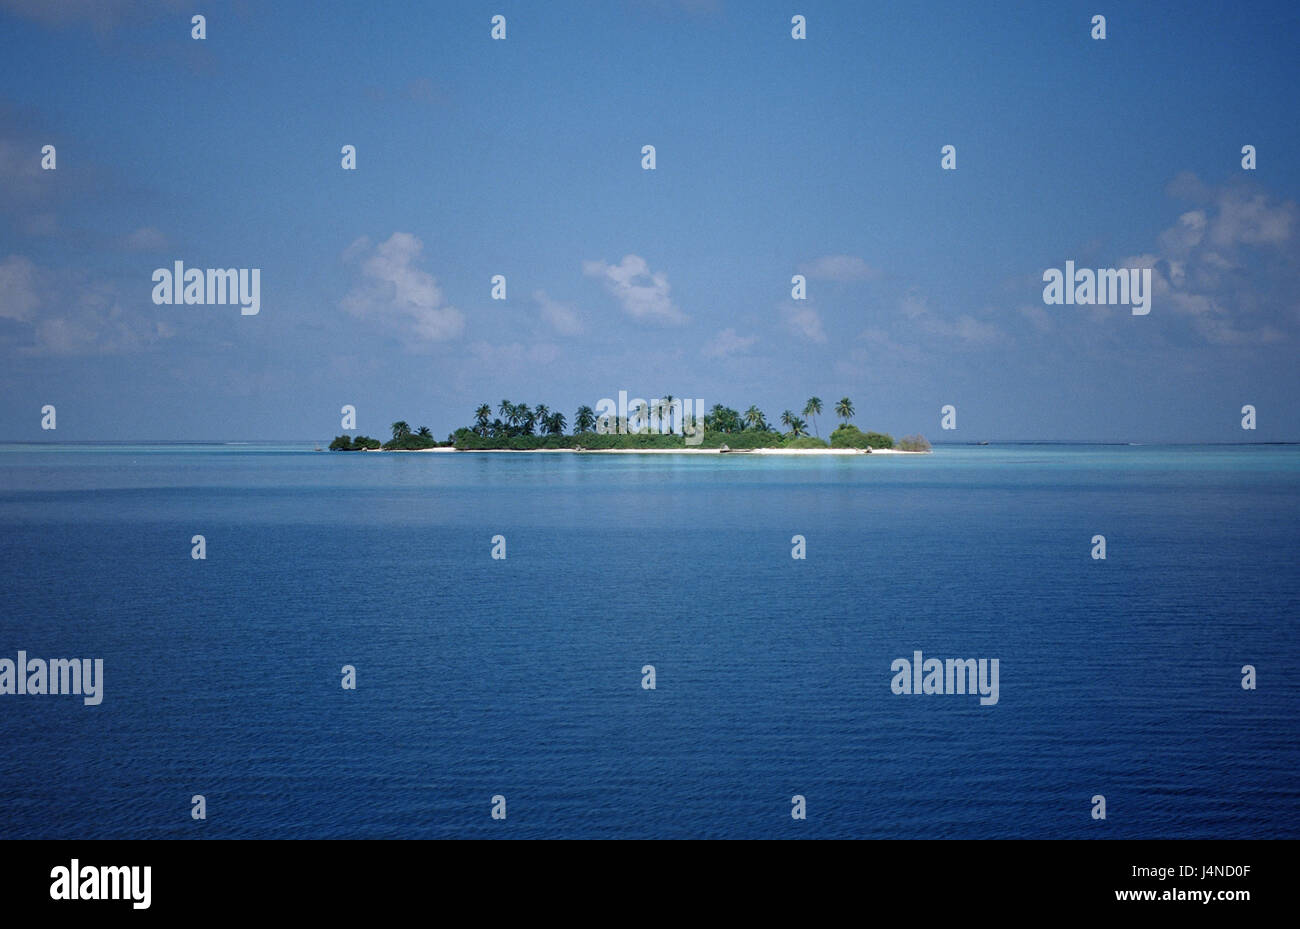 Sea, Maldives island, unoccupied, - Stock Image